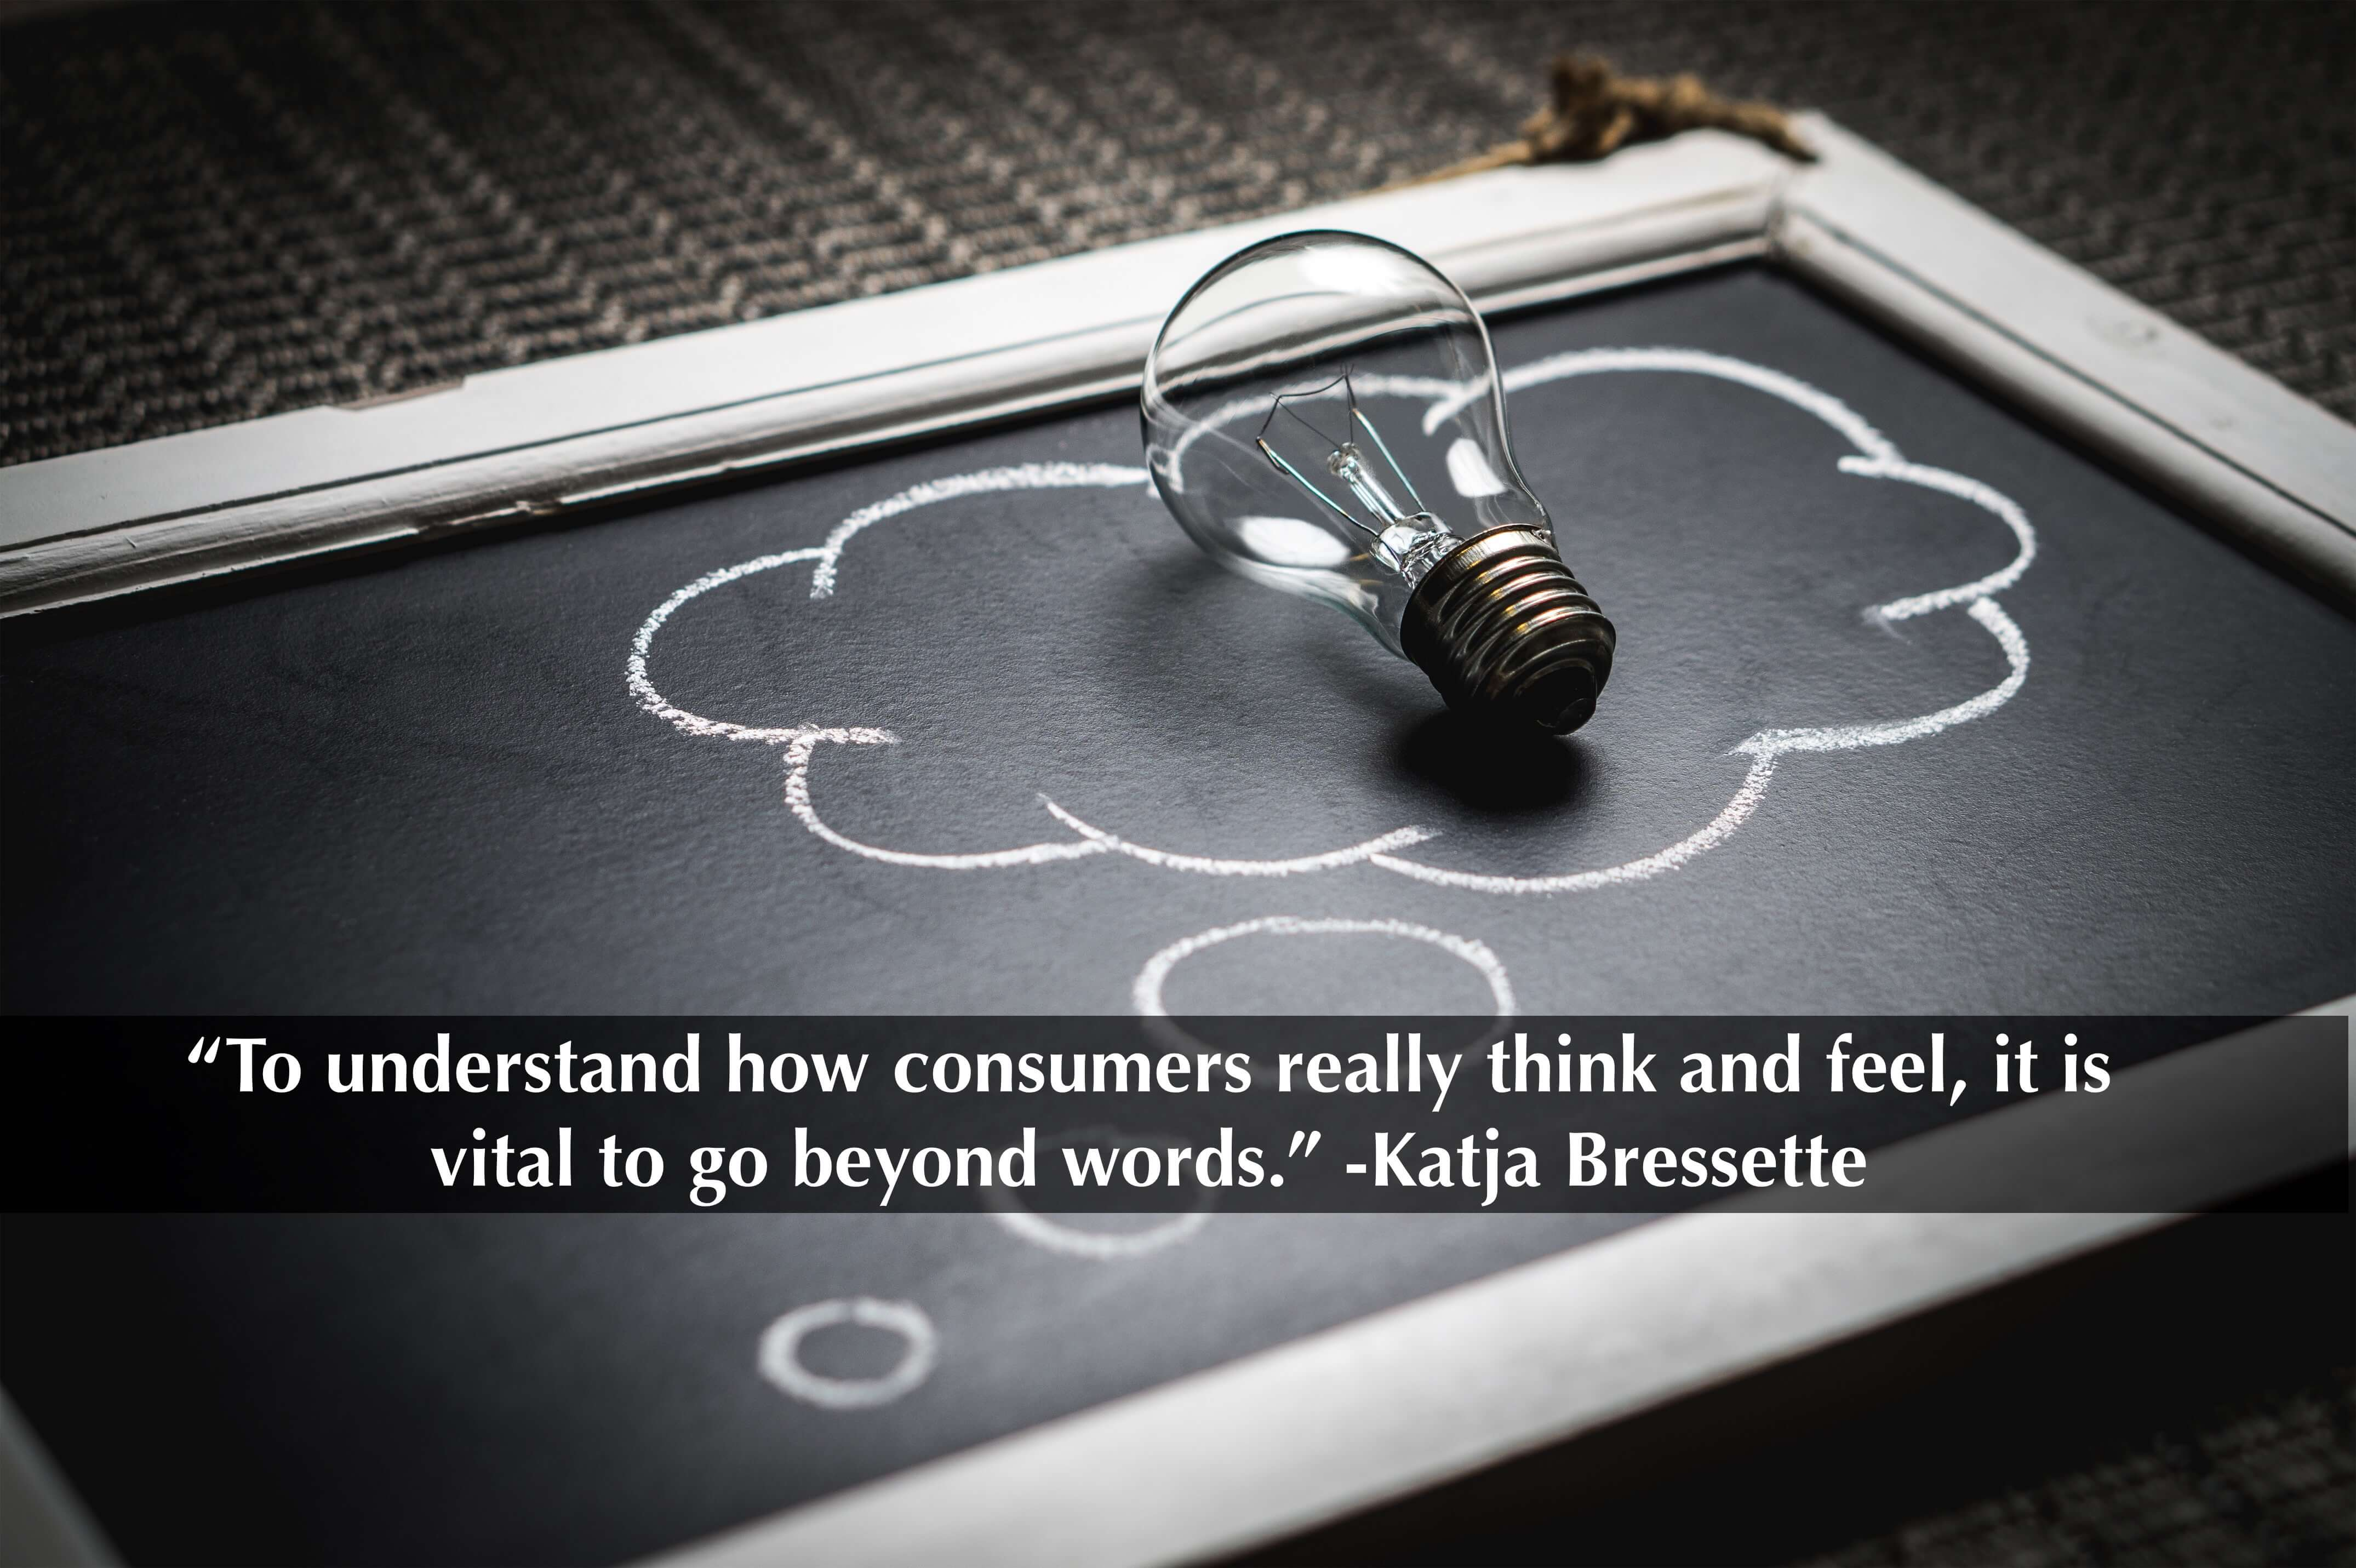 """To understand how consumers really think and feel, it is vital to go beyond words."" -Katja Bressette"